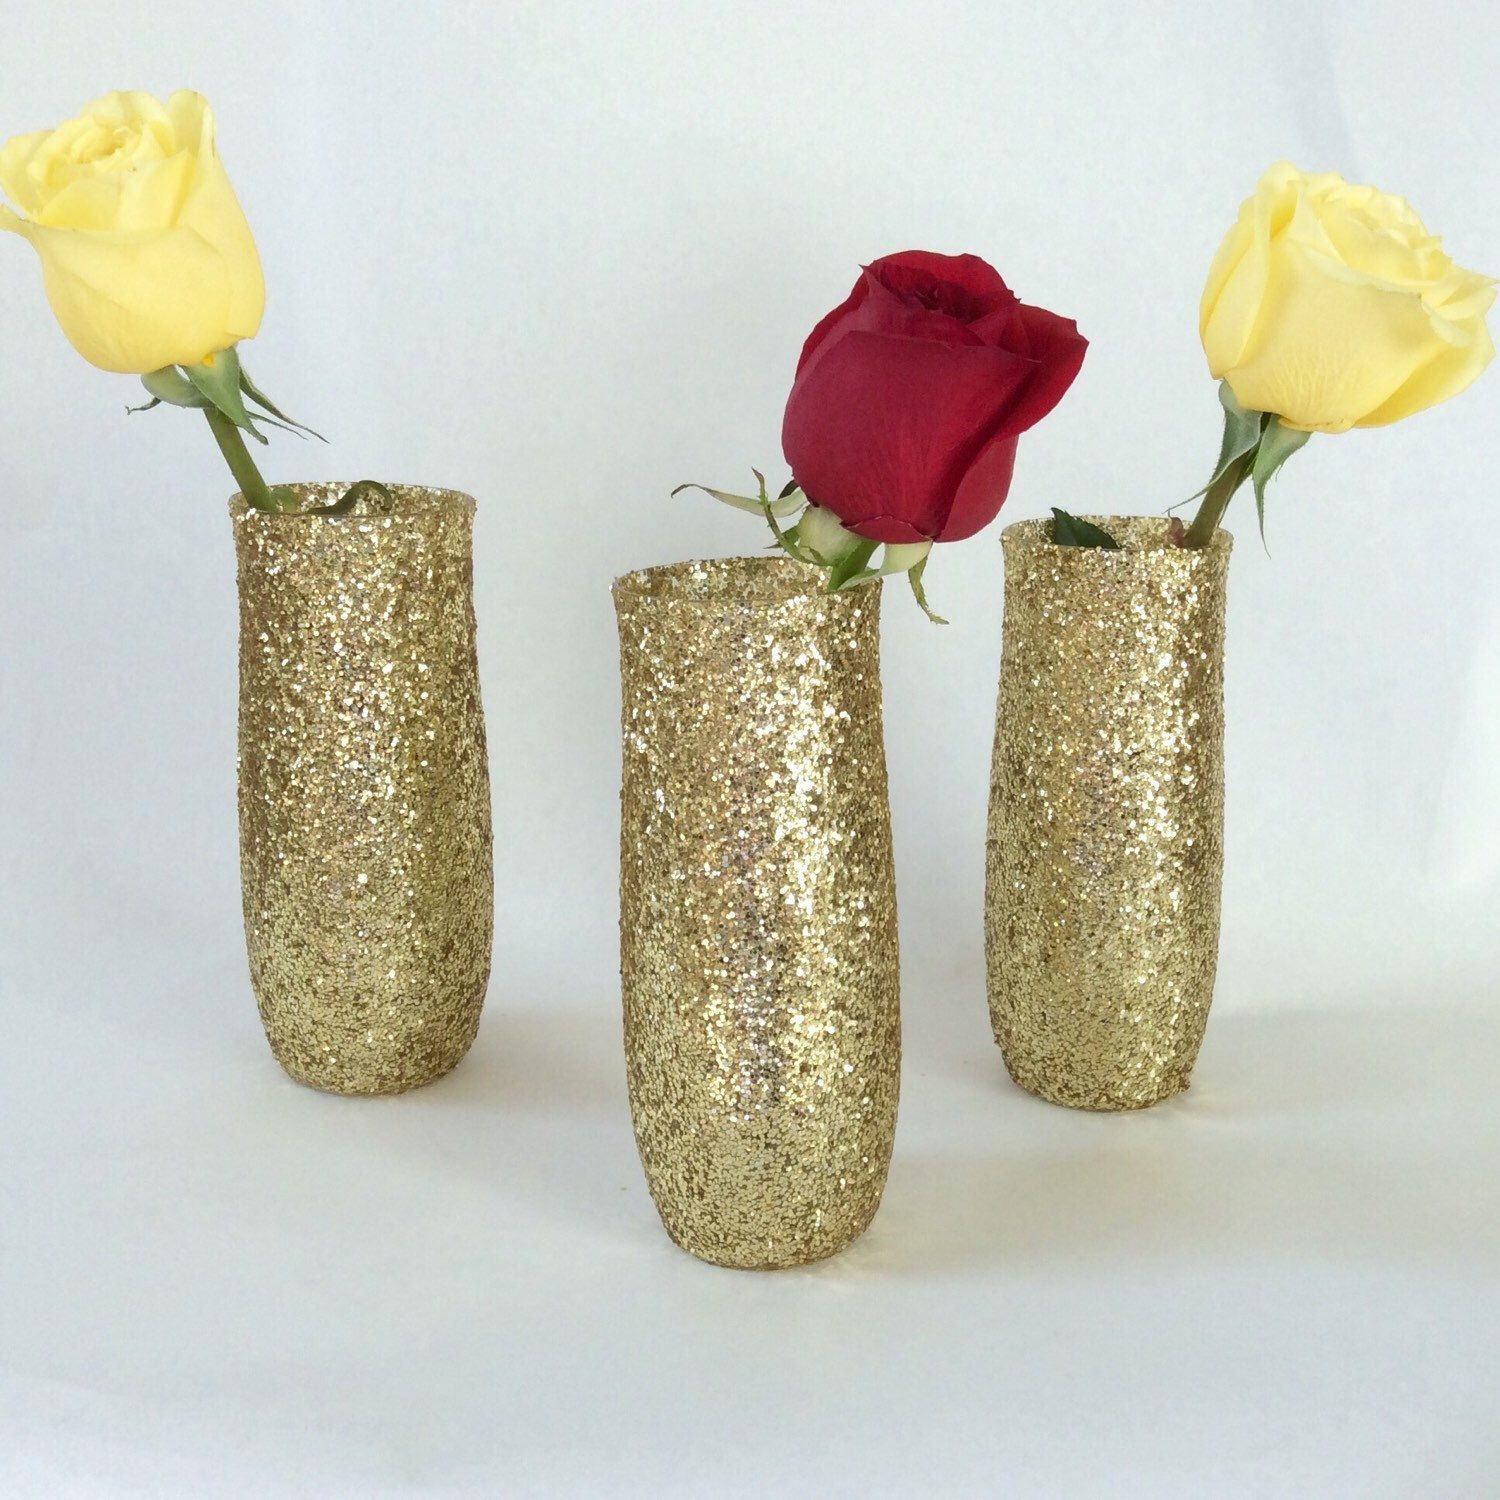 glass vases wholesale in los angeles of 44 gold and silver vase the weekly world for gold glitter vase glitter center piece gold vase gold center